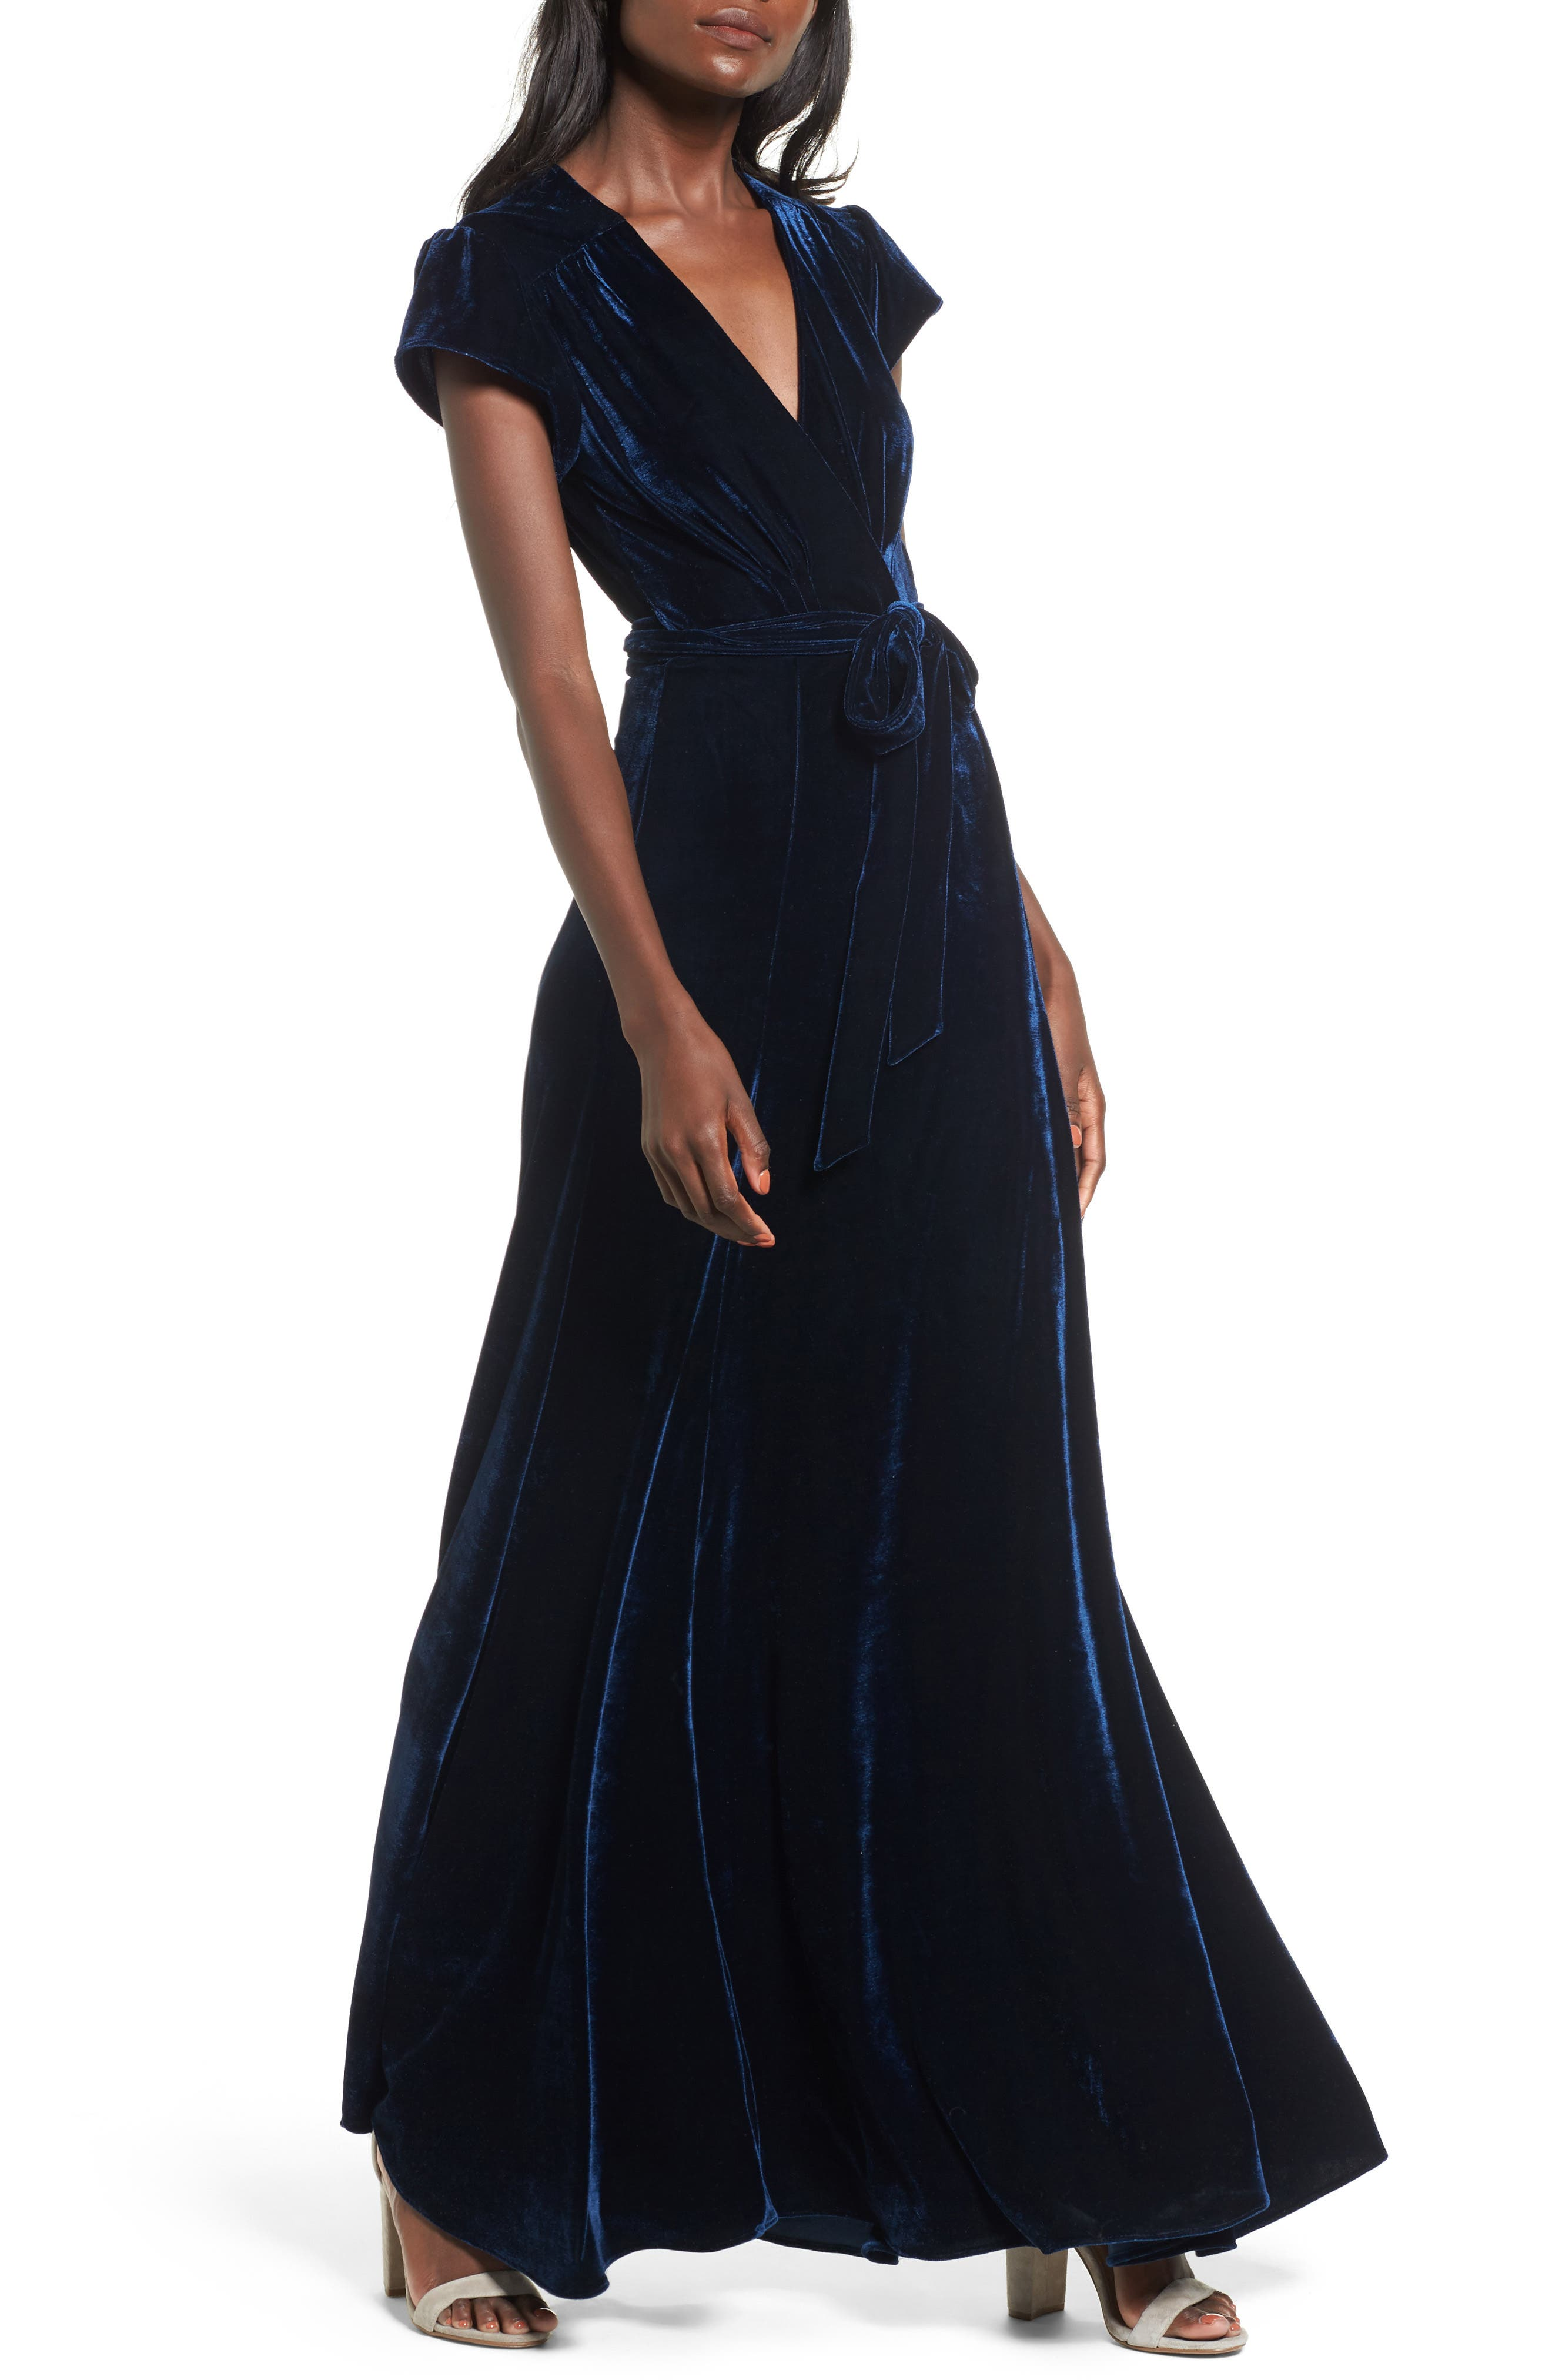 Sid Velvet Wrap Maxi Dress,                             Main thumbnail 1, color,                             400